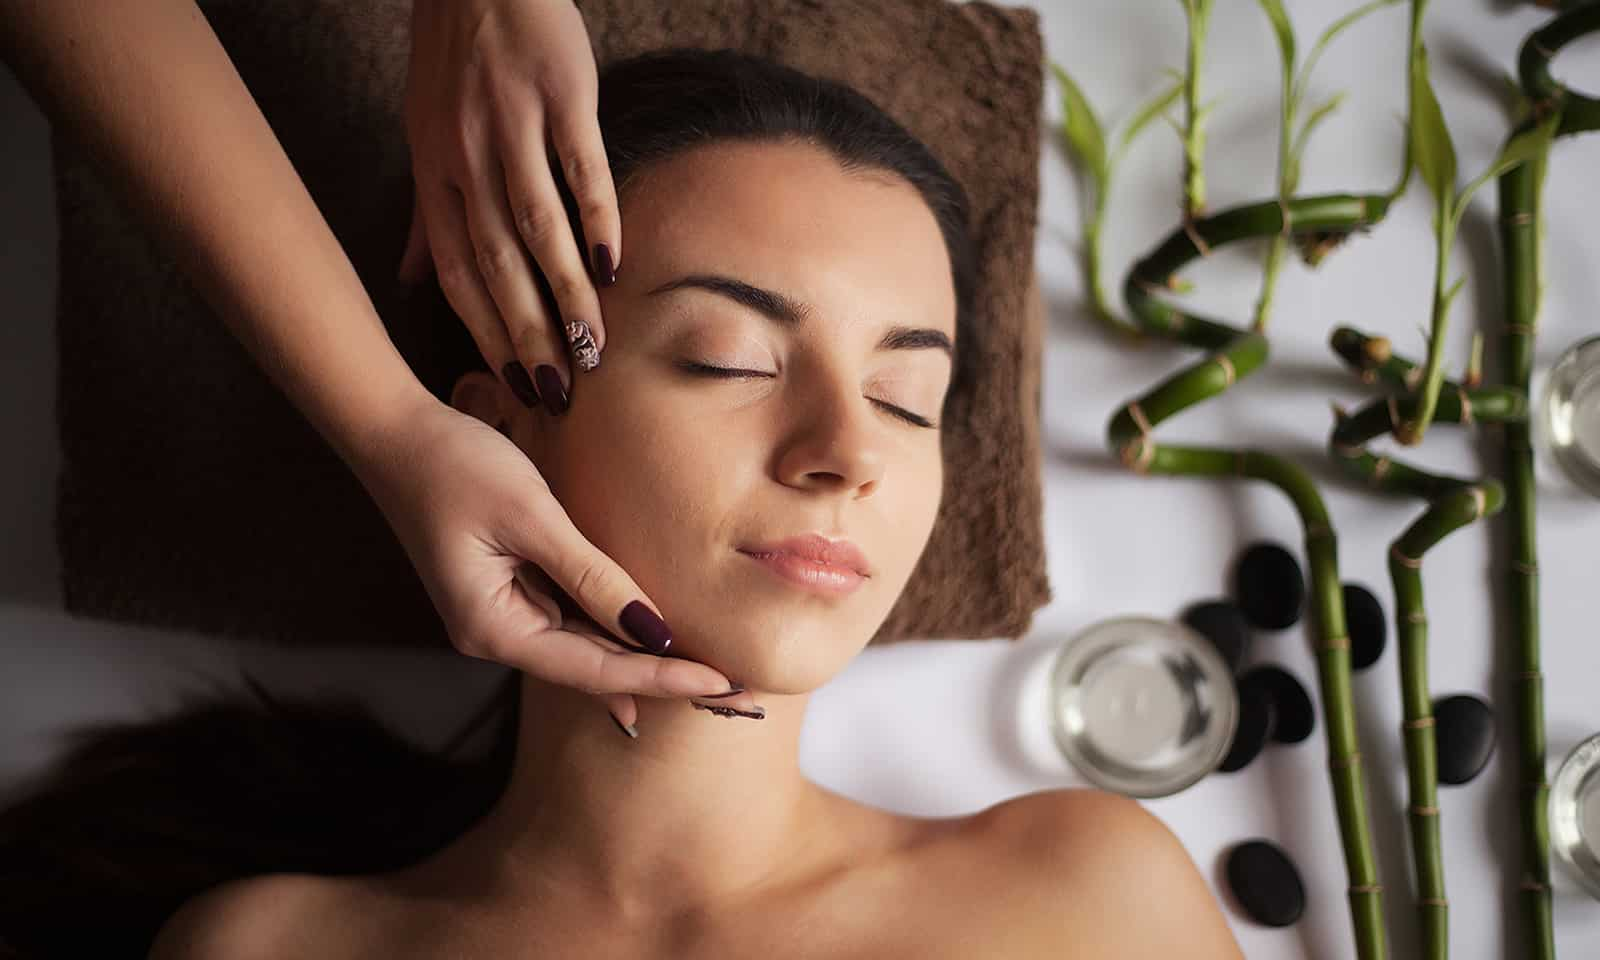 What-is-a-Facial-Massage-and-How-to-Do-It-main-image